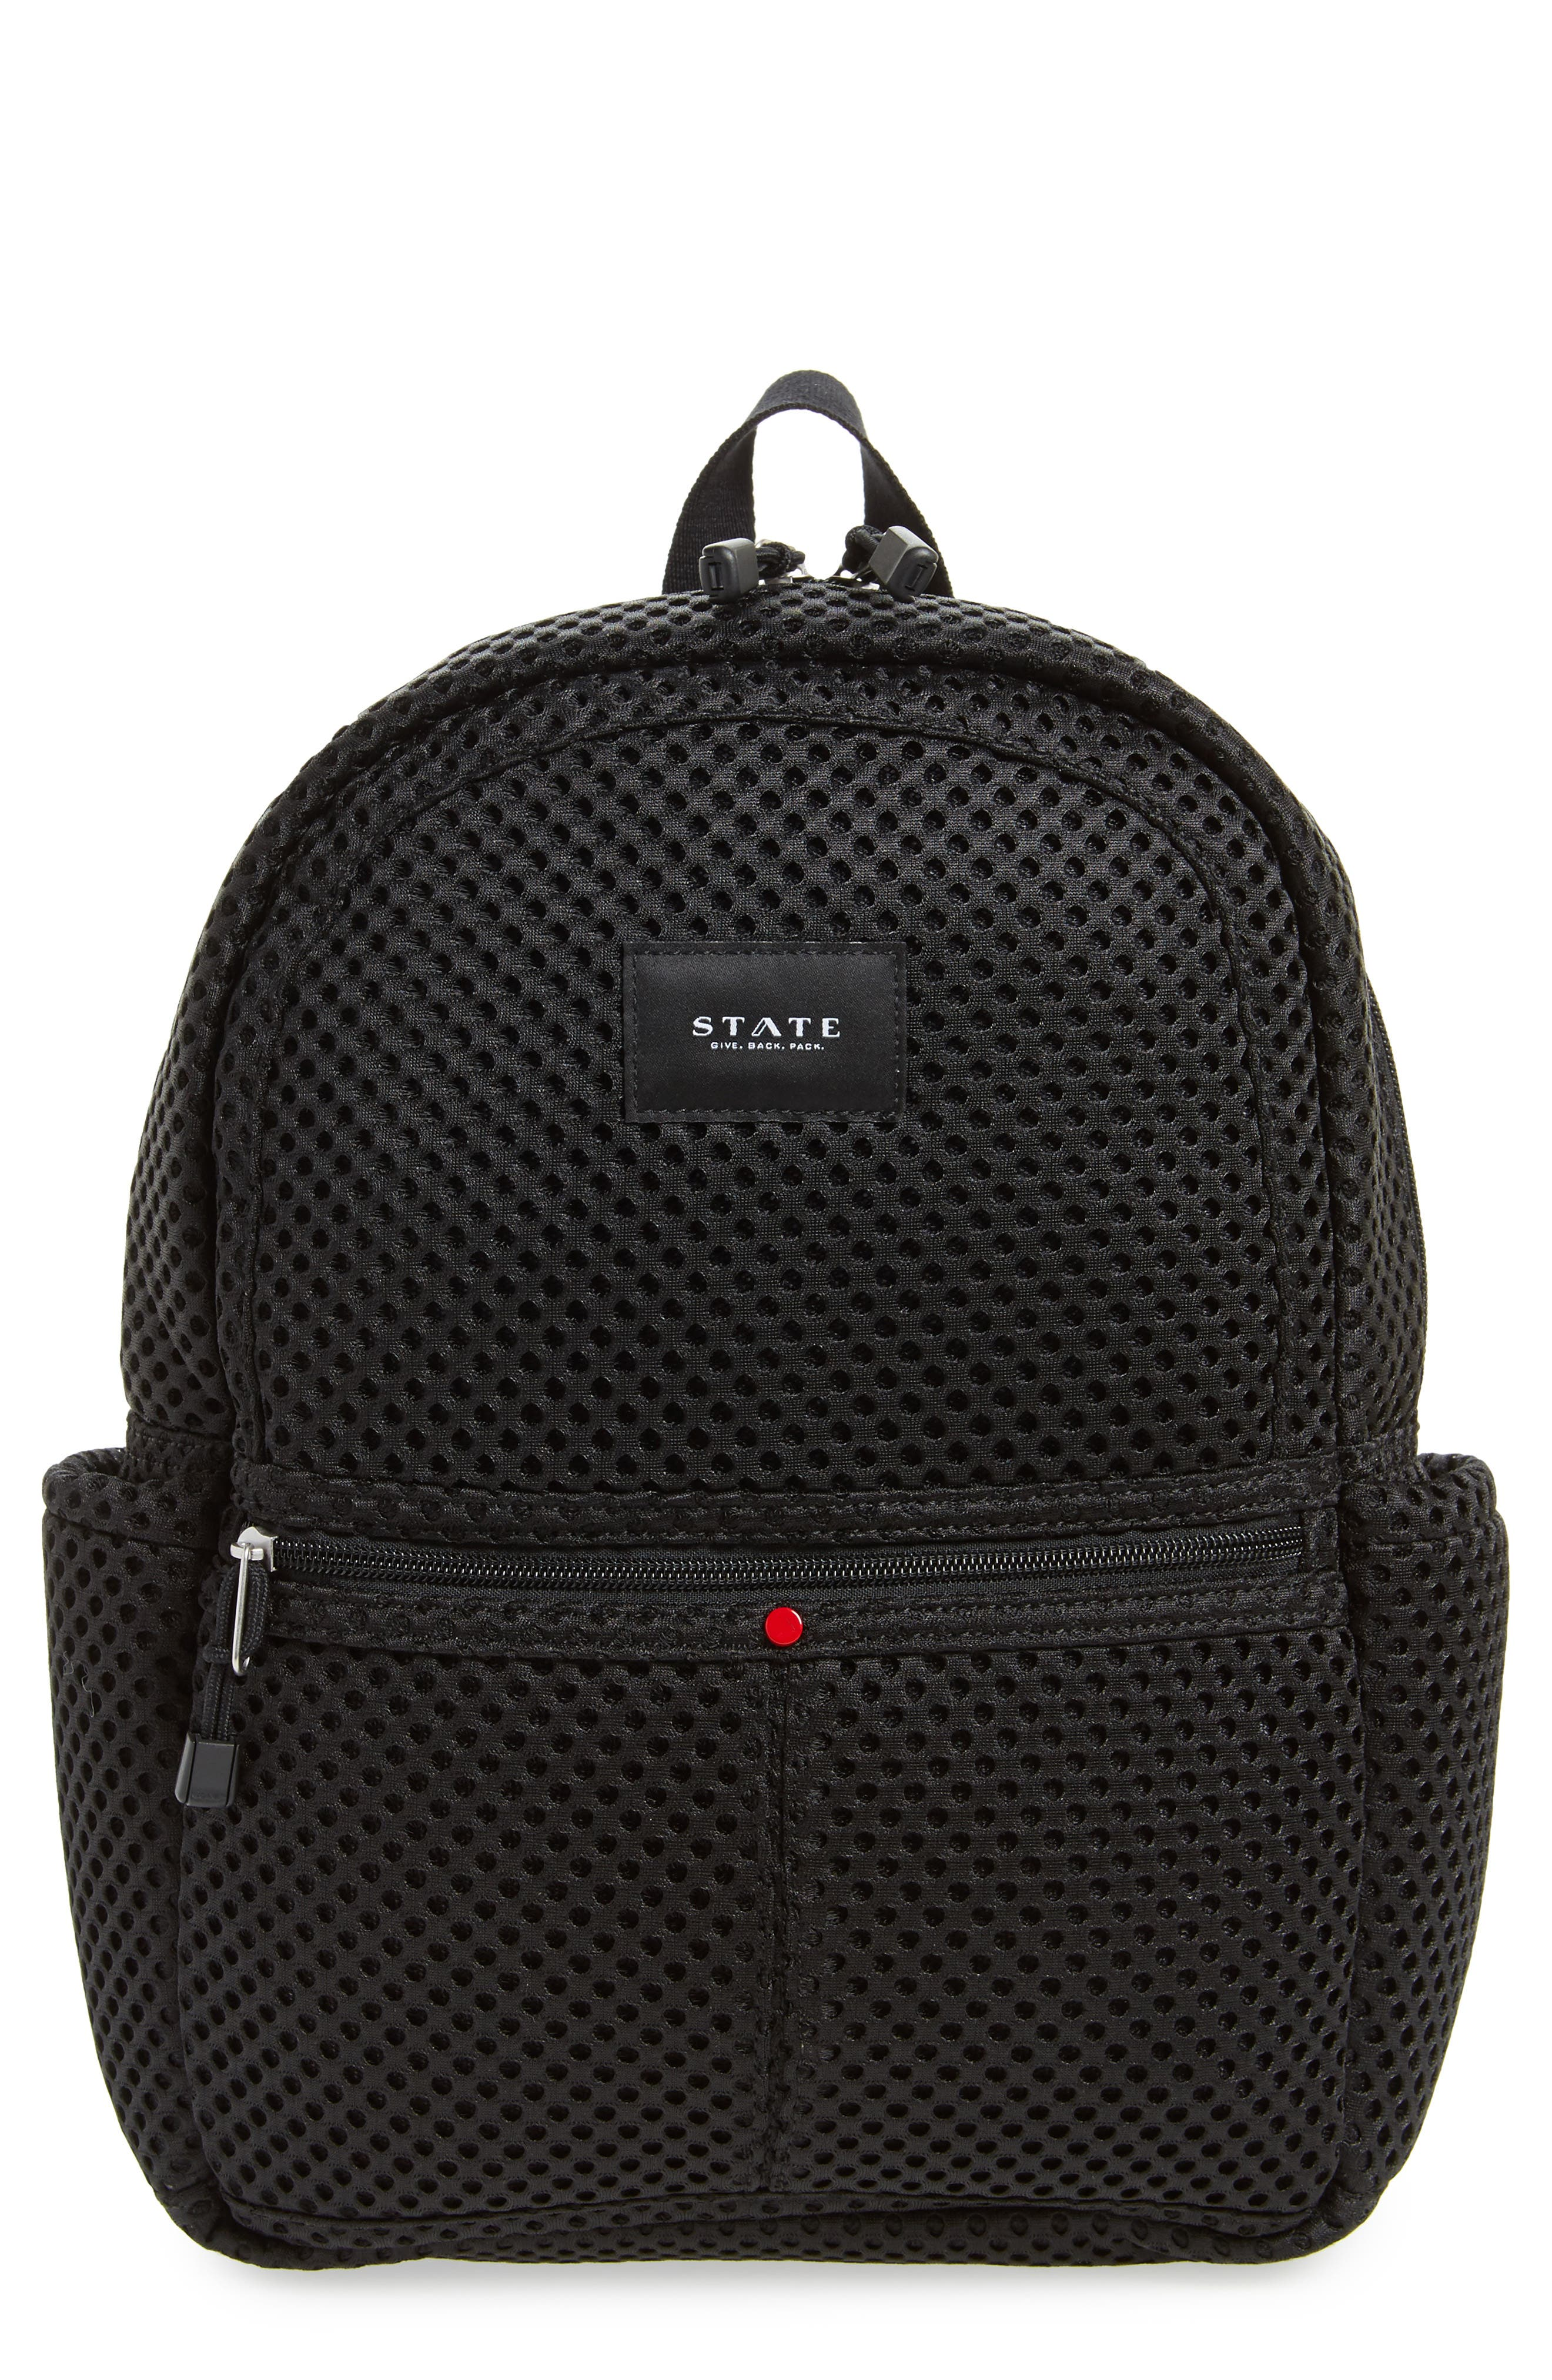 Lacrosse Mesh Kane Backpack,                             Main thumbnail 1, color,                             001